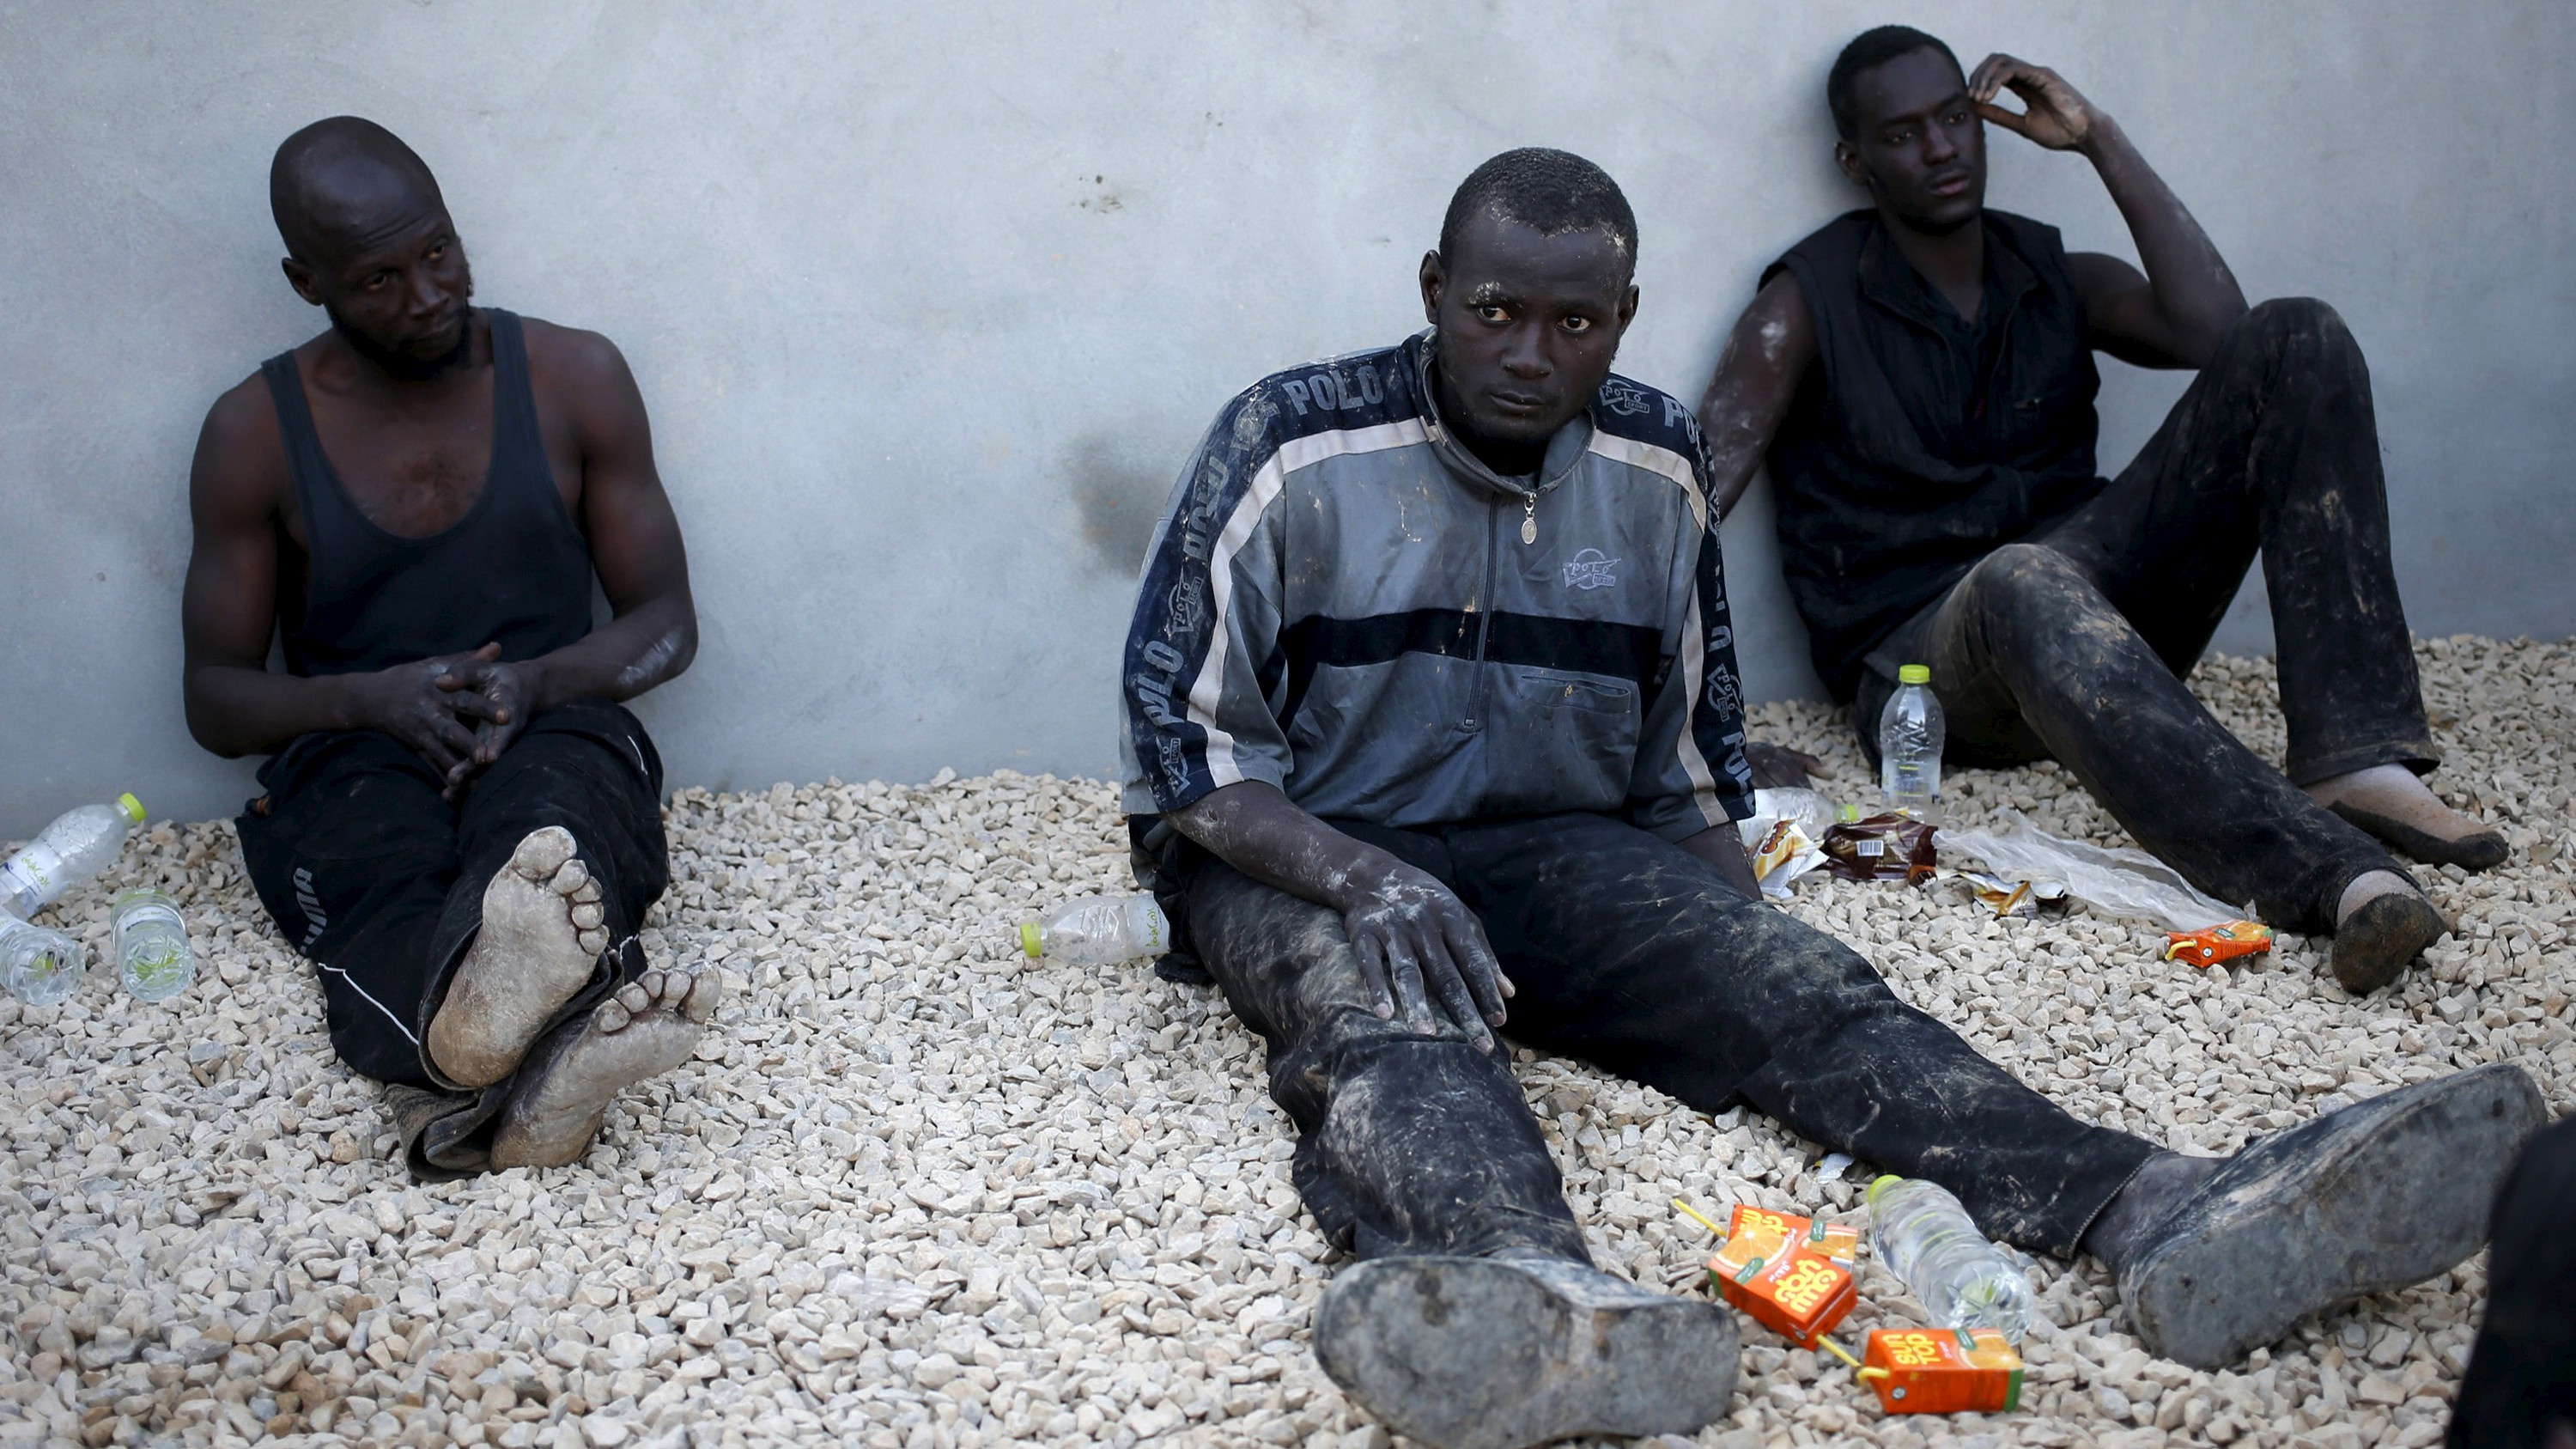 Migrants in Libya, a transit point on the way to Europe.